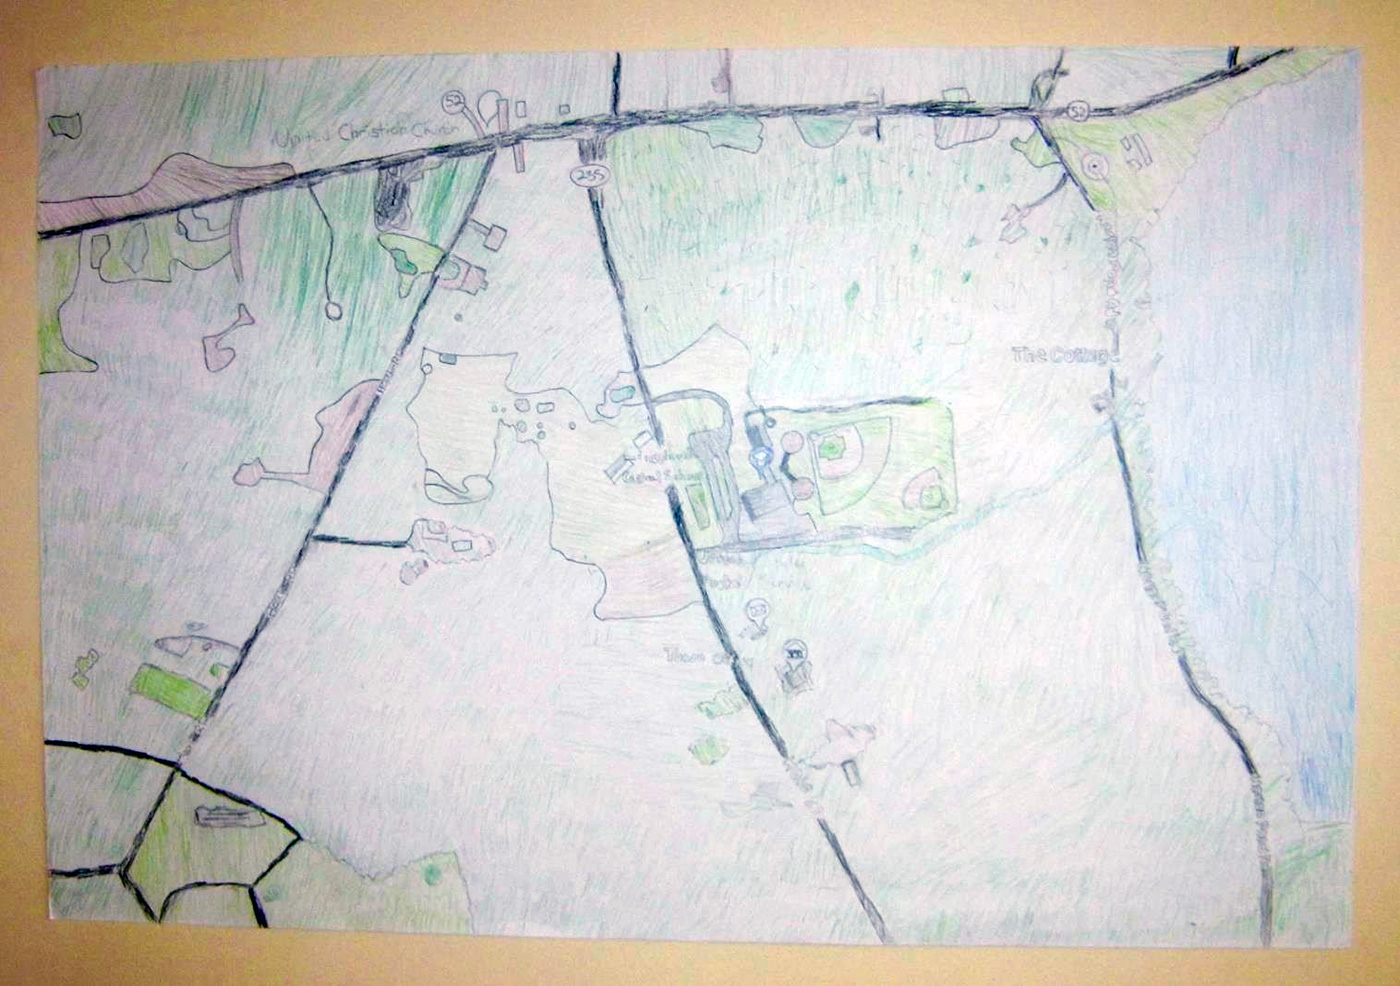 Lincolnville Students Prevent Pollution And Design Watershed Map